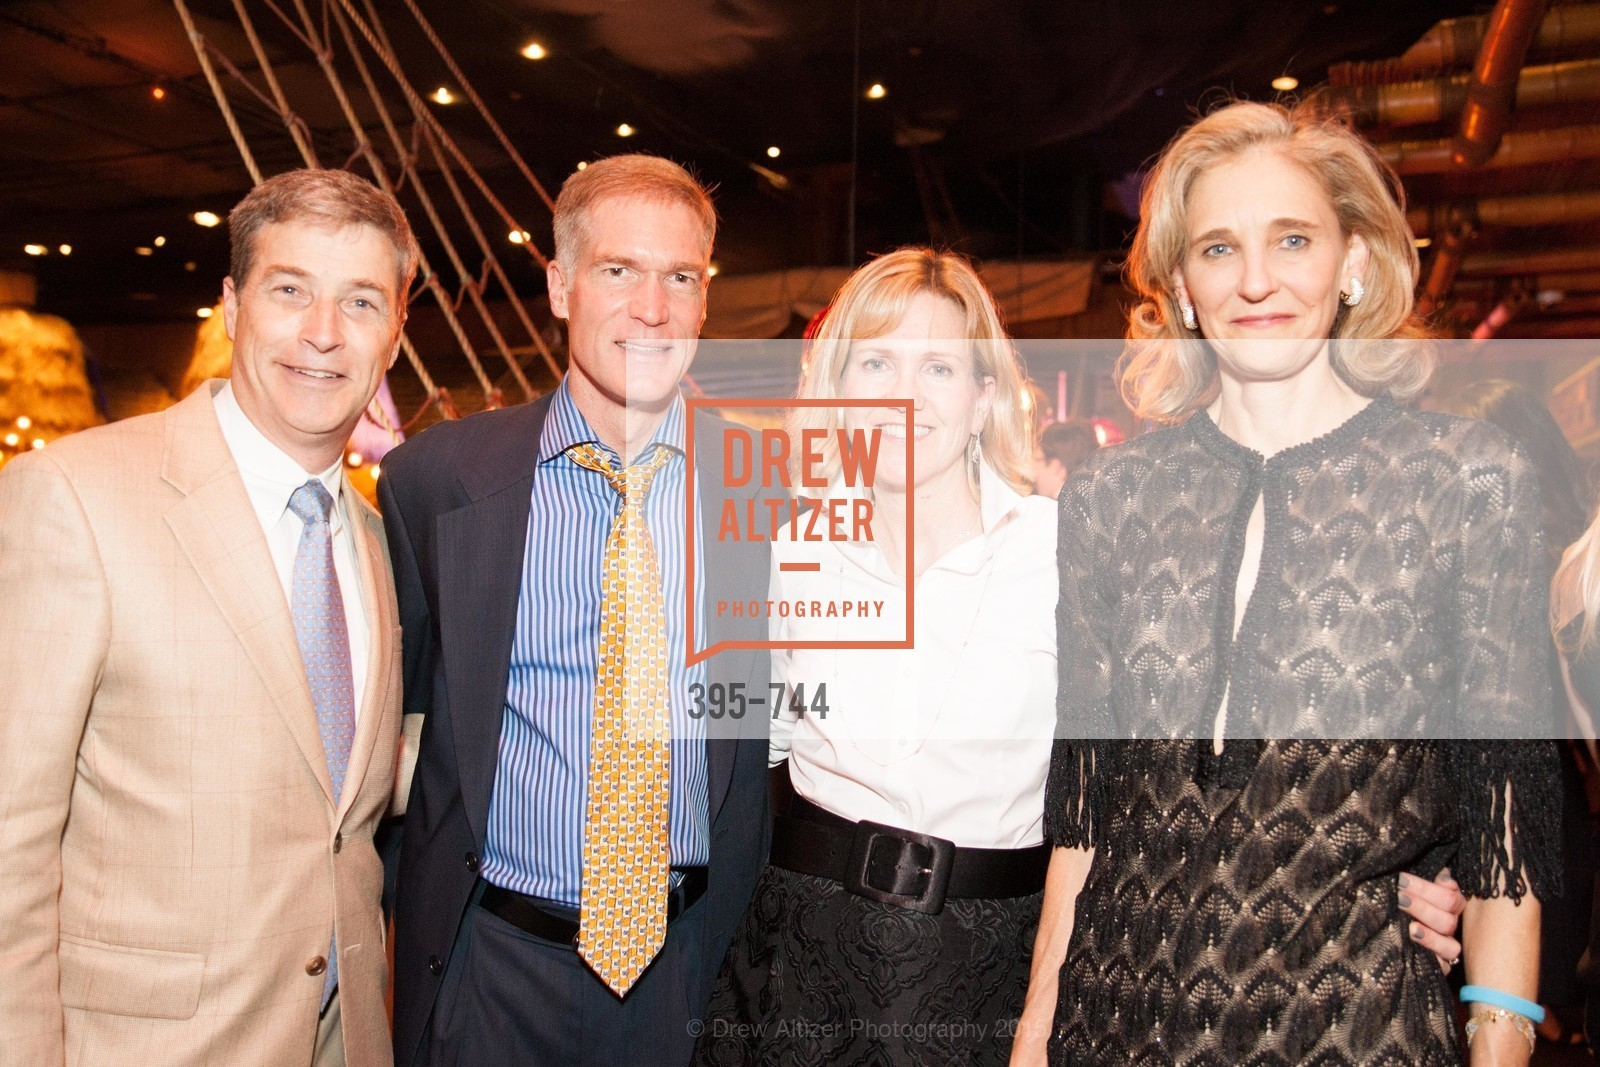 Bruce Callander, Bill Mellin, Barbee Callander, Jennifer Biederbeck, Celebration of Launch of SHYP in Los Angeles, US, May 21st, 2015,Drew Altizer, Drew Altizer Photography, full-service agency, private events, San Francisco photographer, photographer california